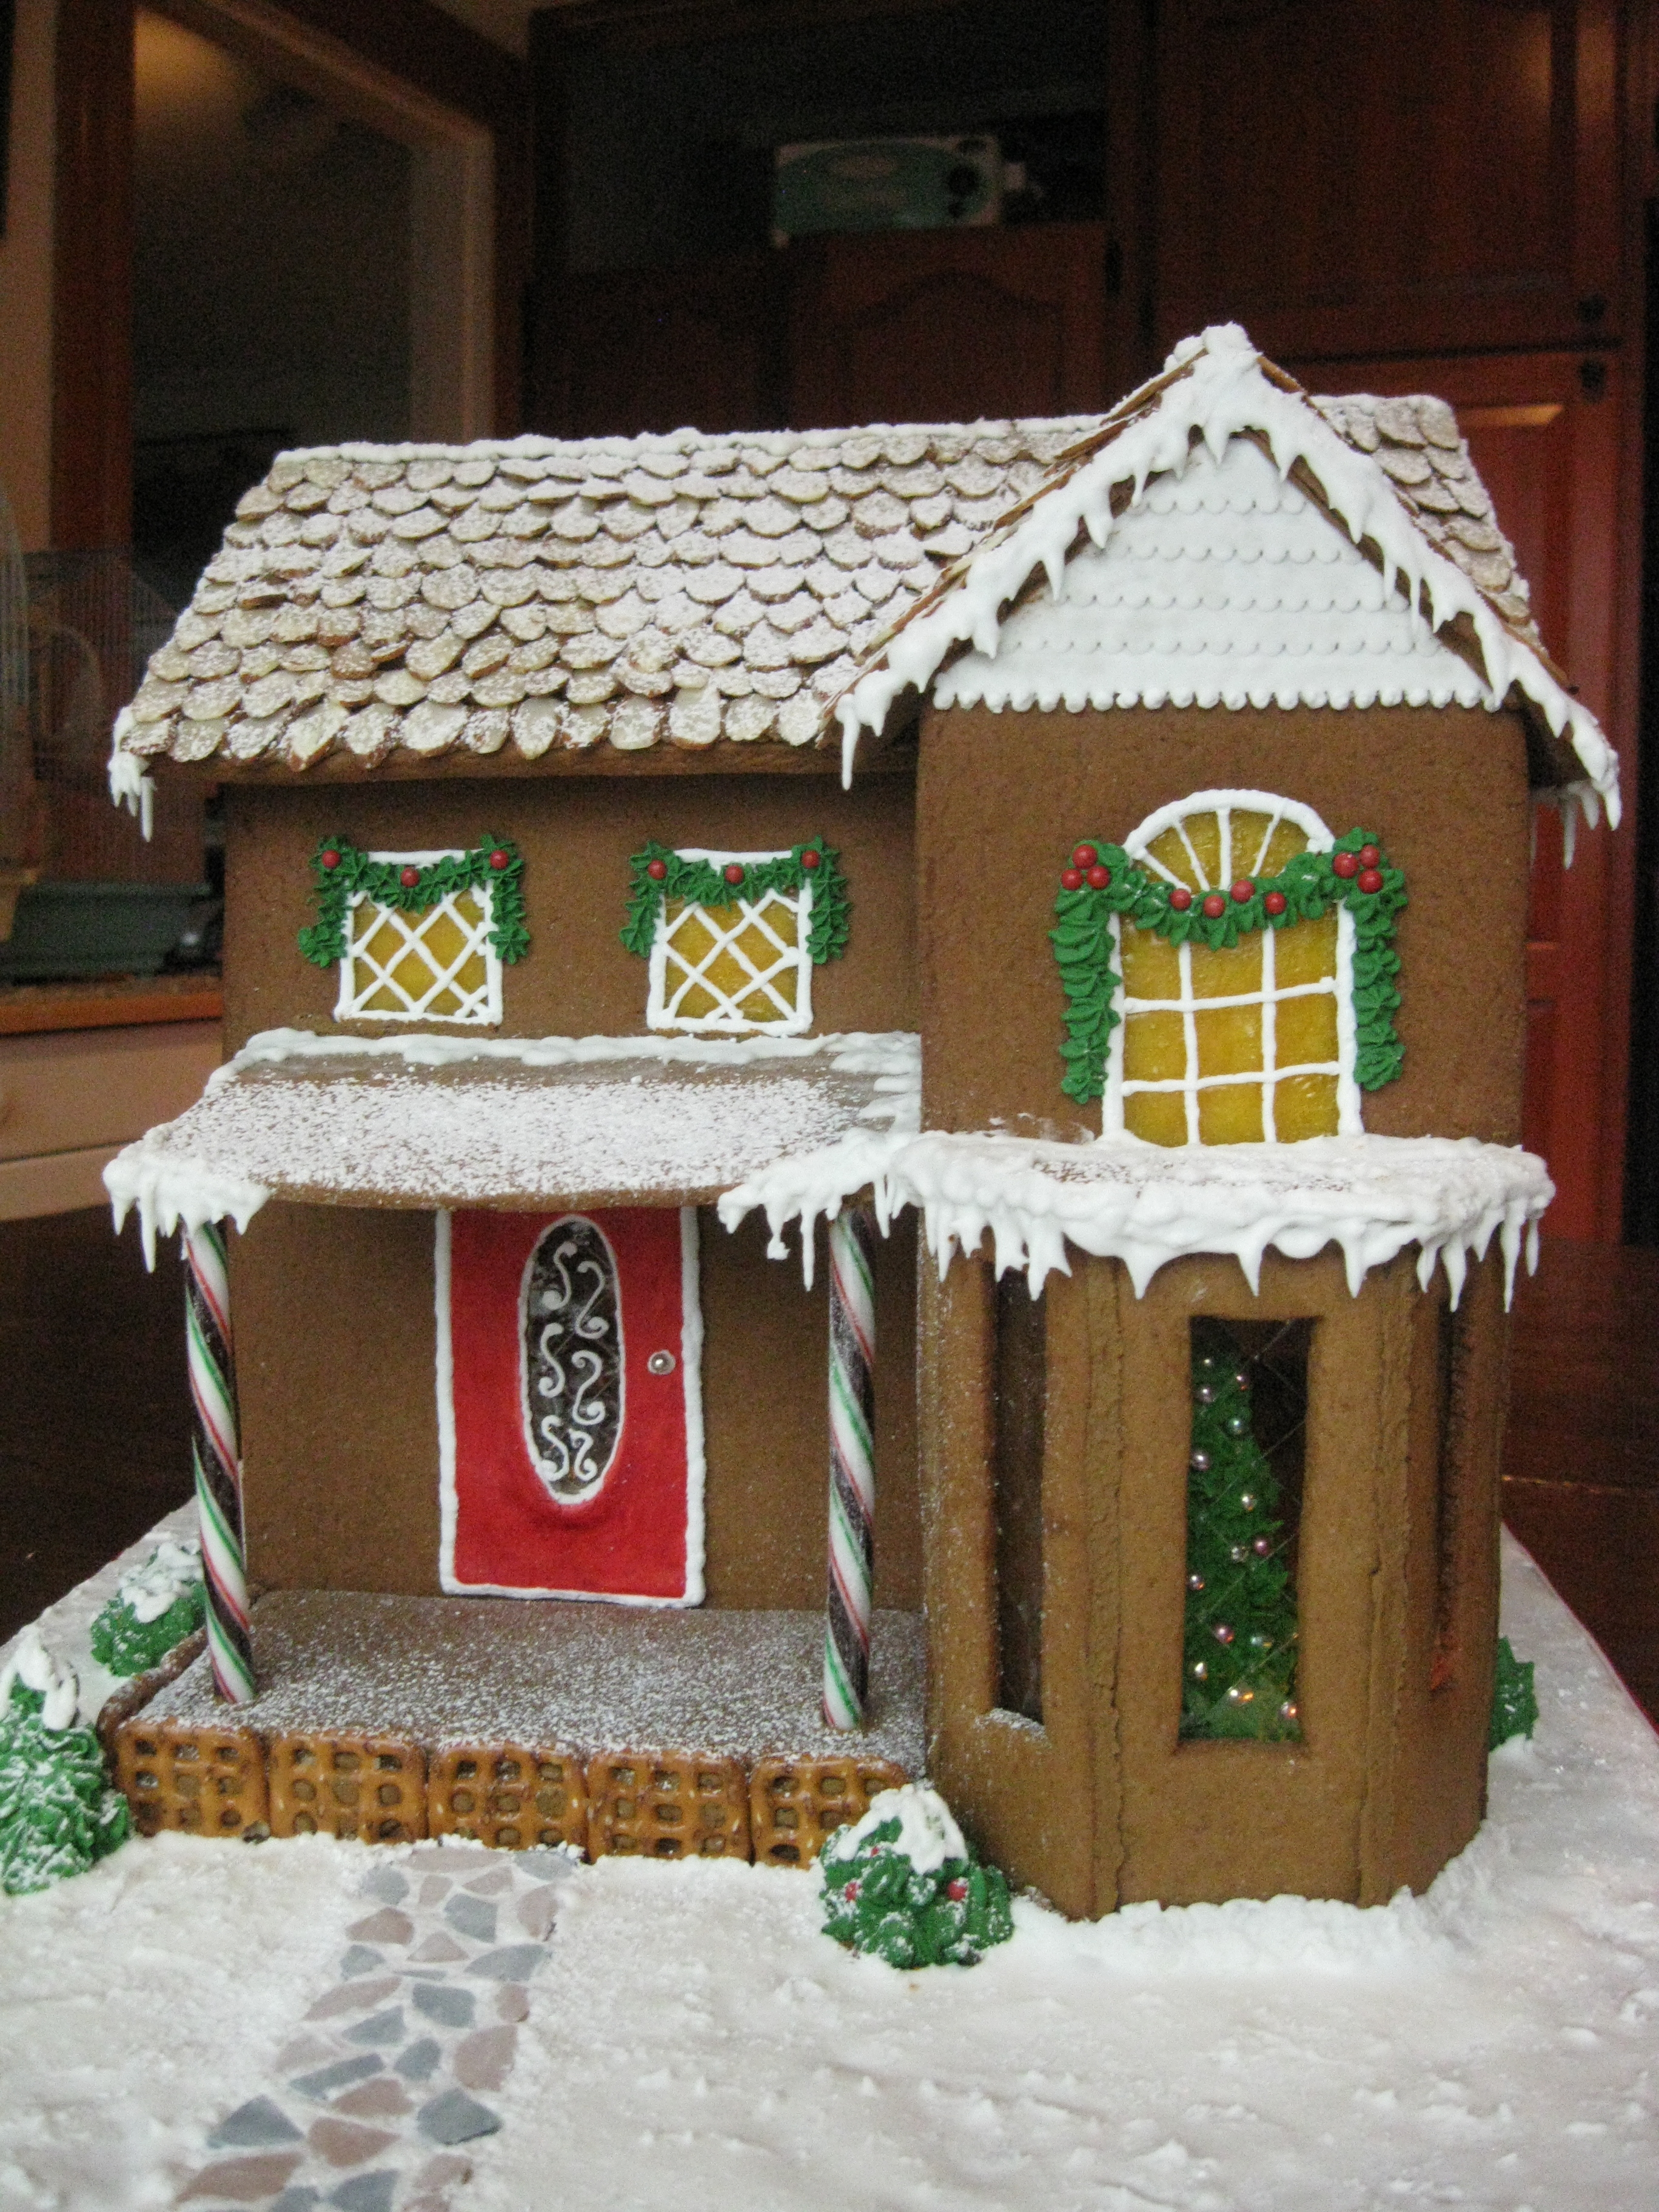 All materials are edible. Gingerbread, Gumpaste, Royal Icing, Almonds, Necco wafers, candy, pretzels. Tree in window is Royal Icing with dragees; Bay window panes are leaf gelatin. Thanks for looking!